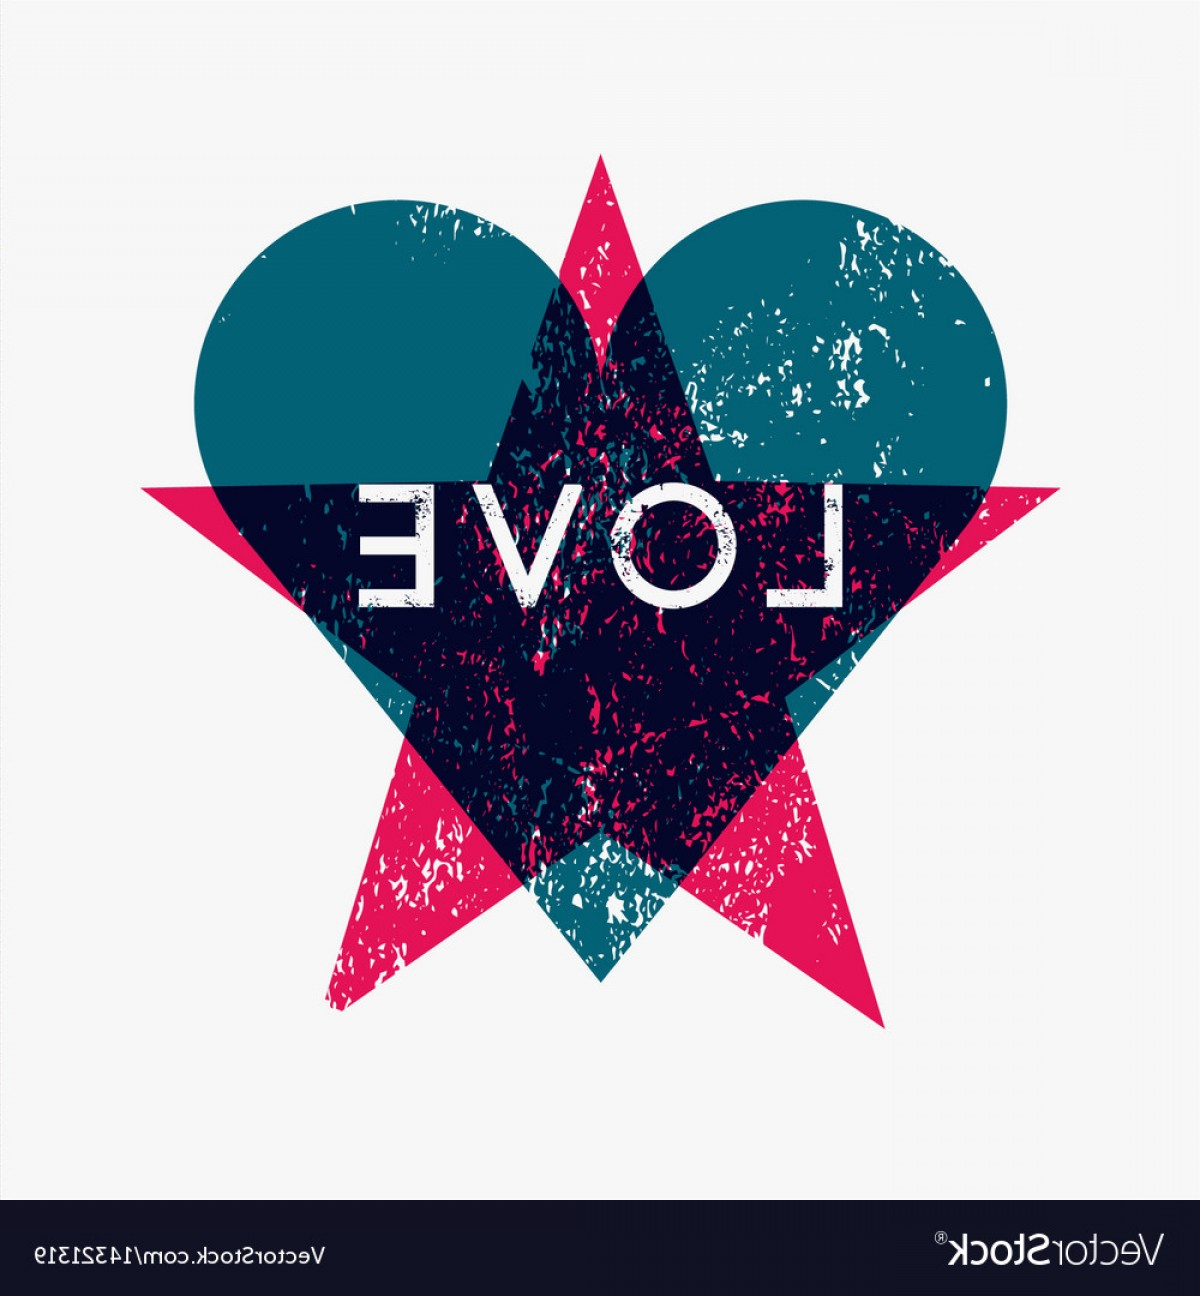 Vectors Heart And Star: Love Heart And Star Grunge Abstract Background Vector